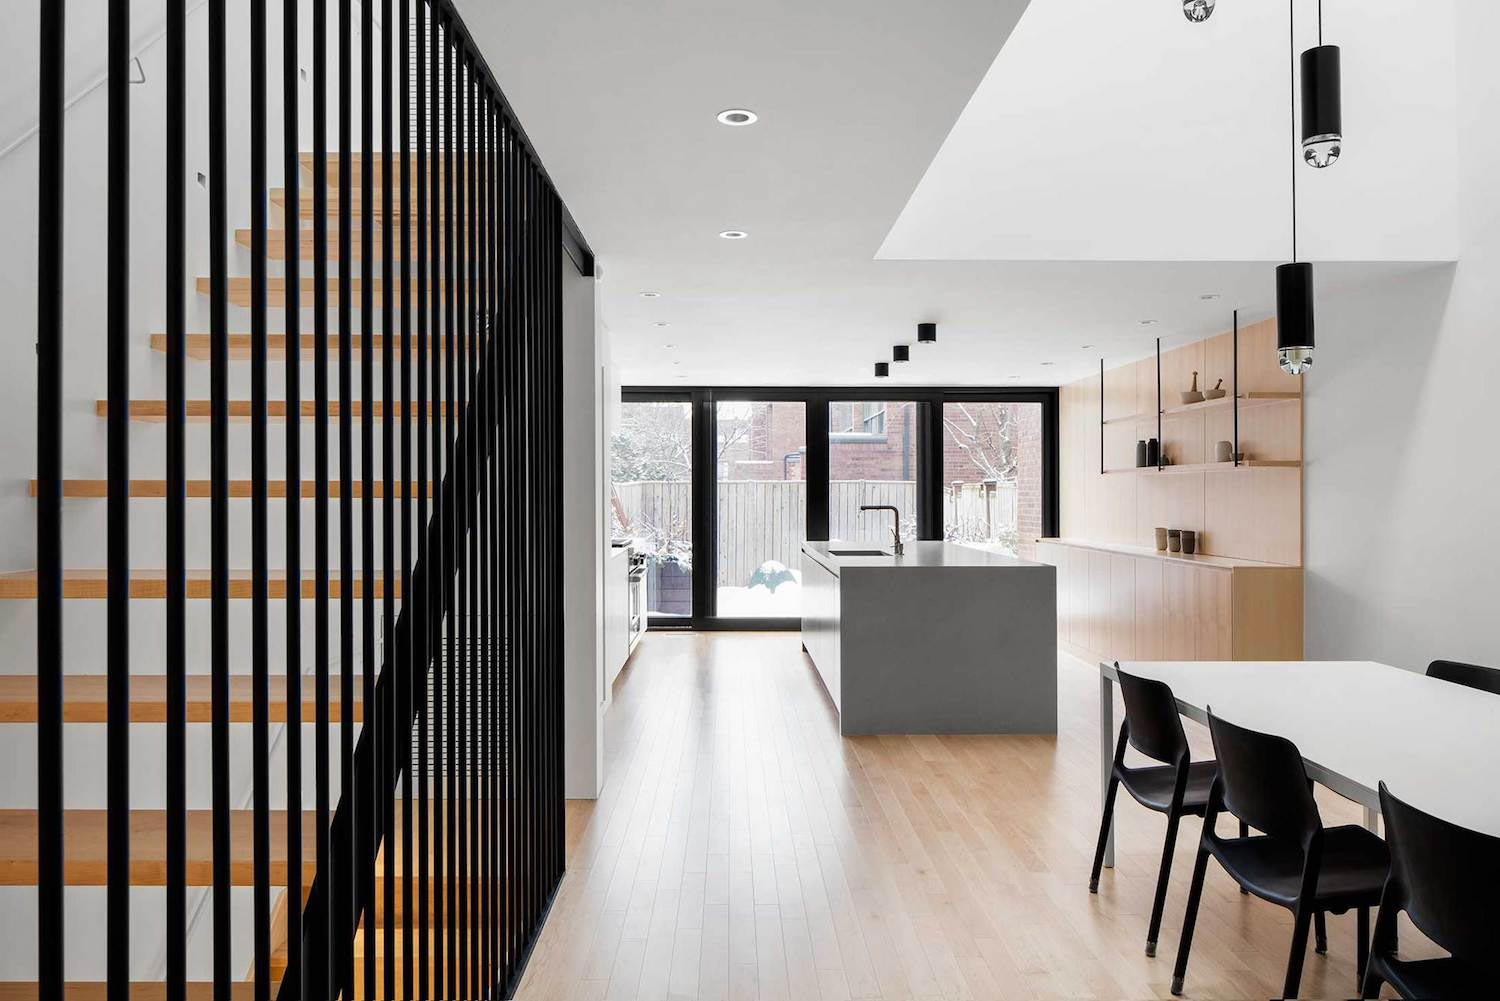 Somerville Residence by NatureHumaine renovation a row house with a tripleheight void topped